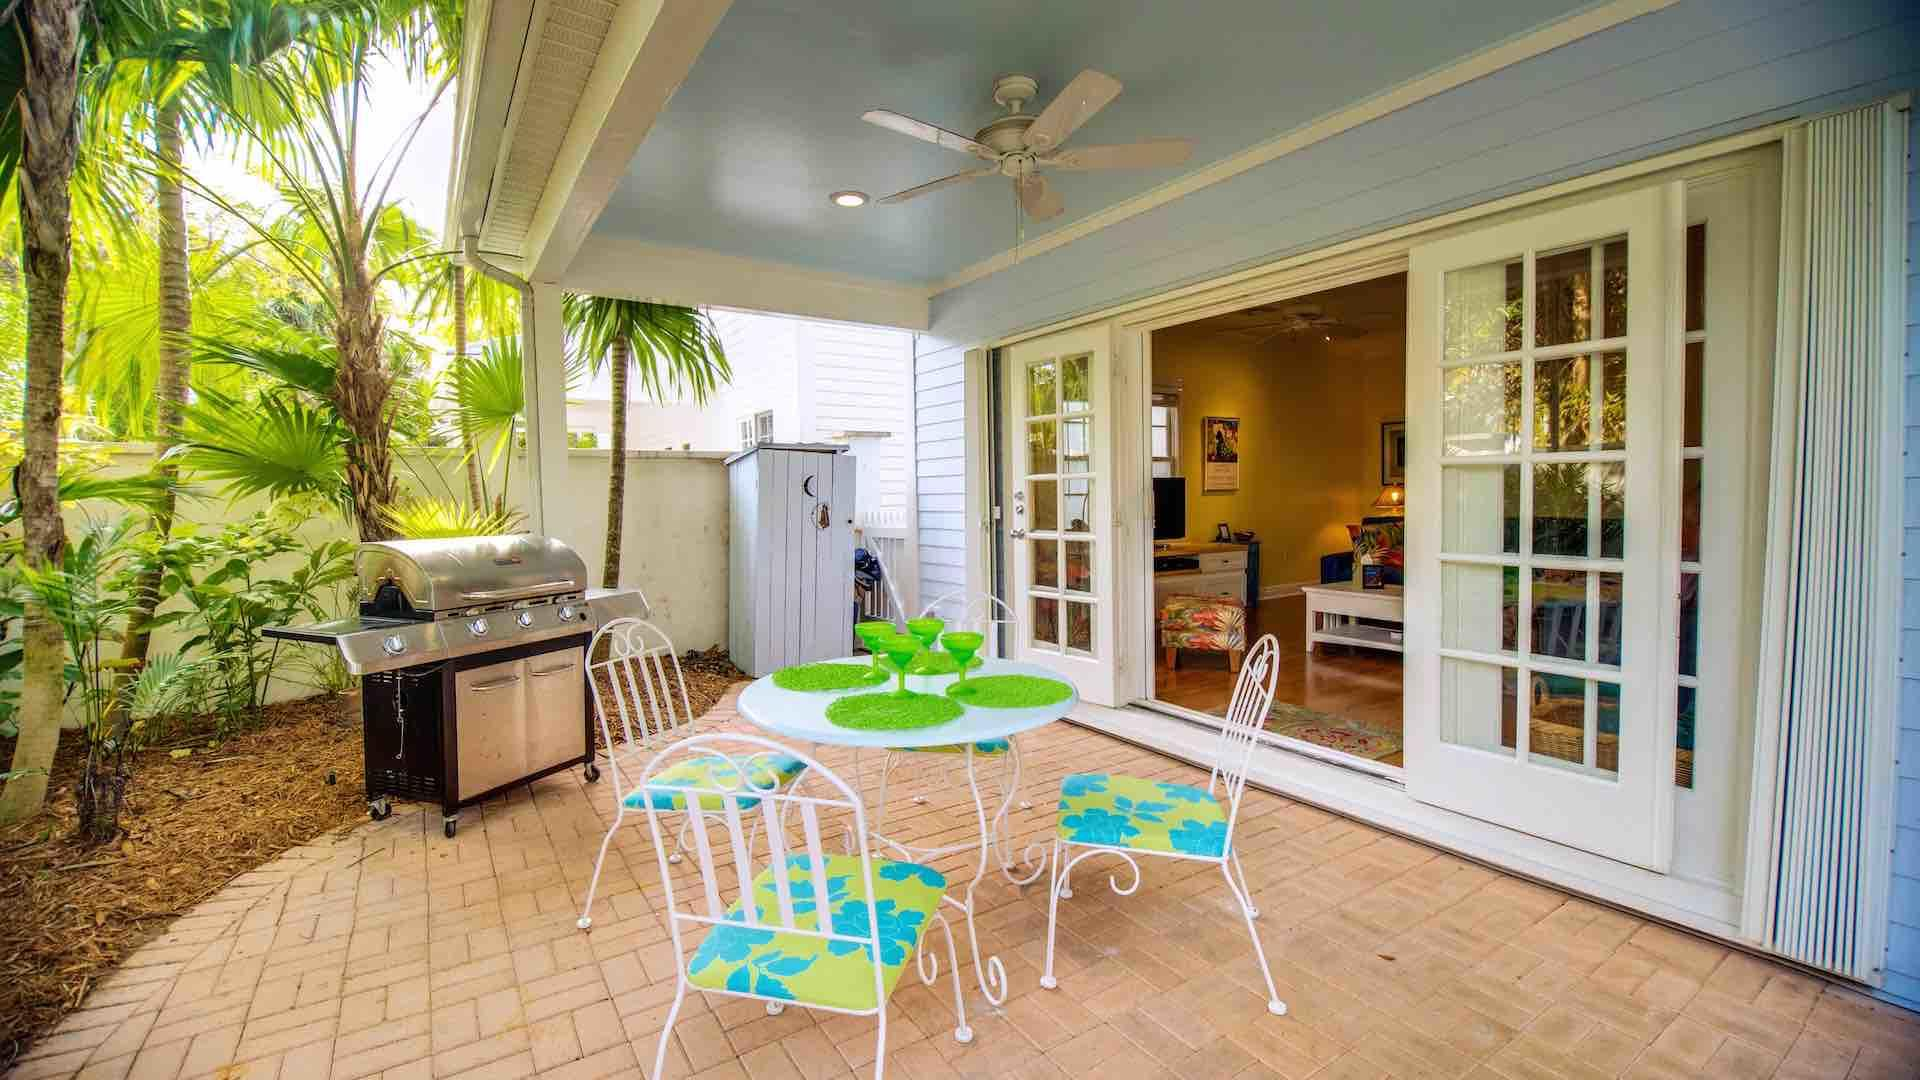 The back porch is perfect for outdoor dining...